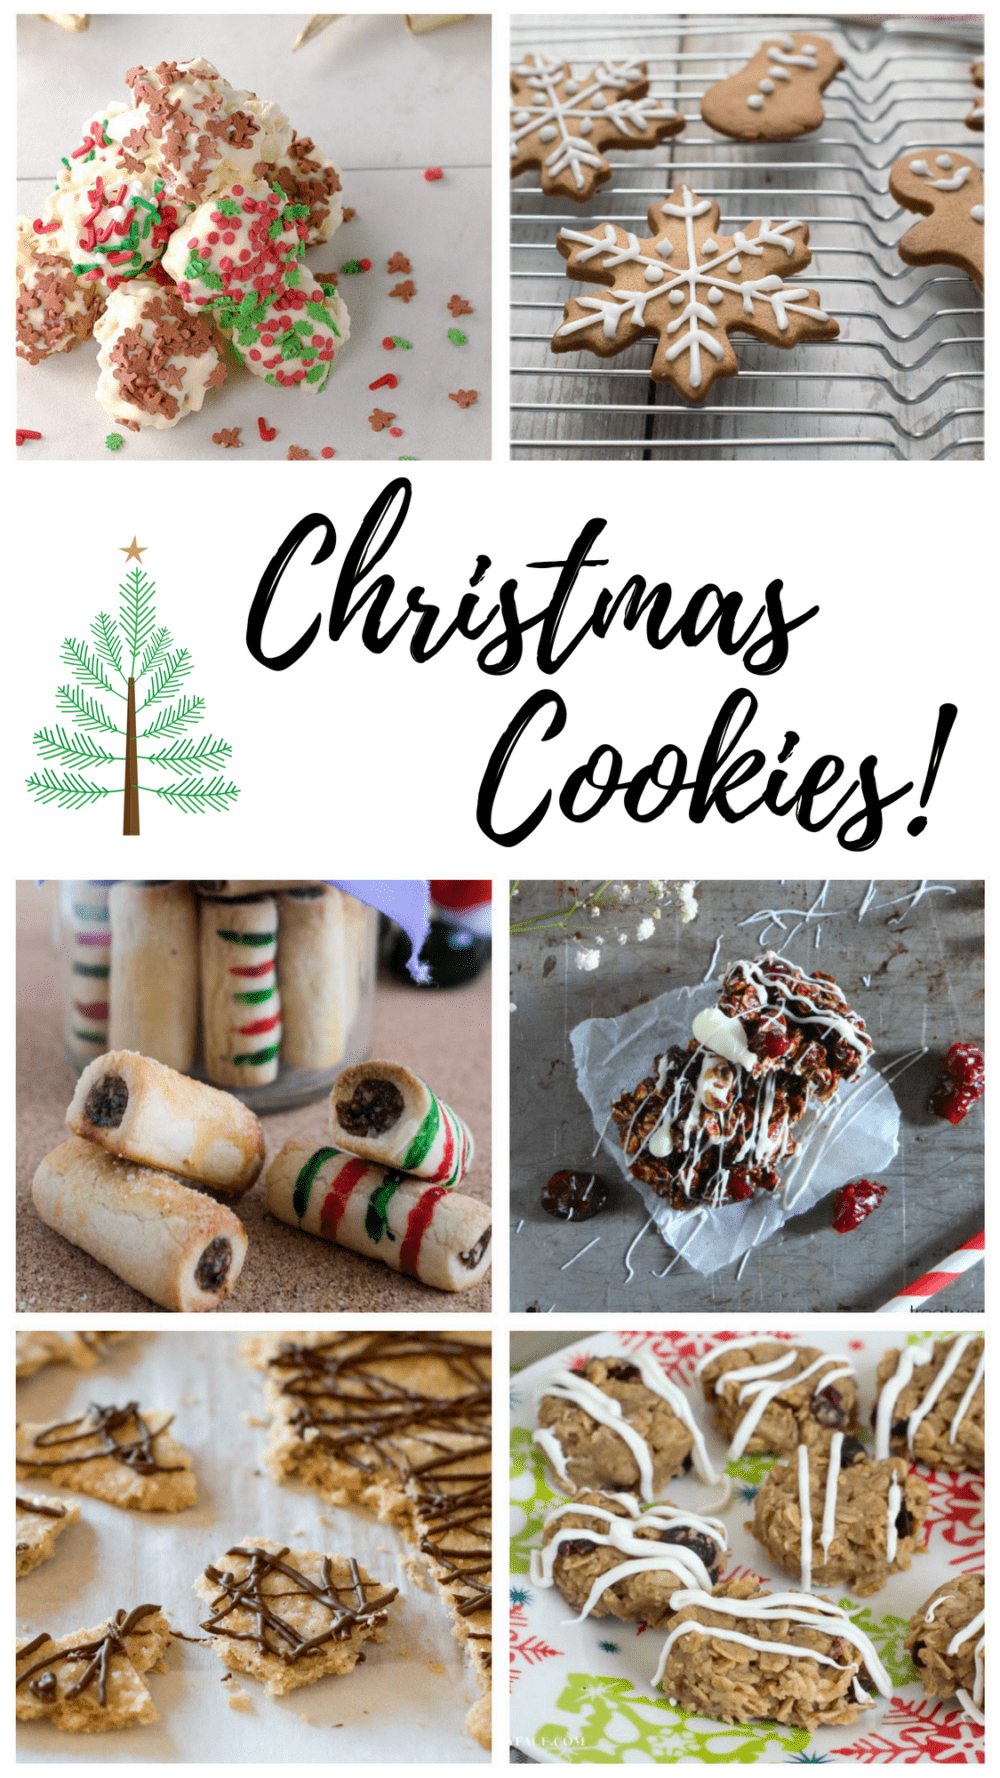 Food Blog Genius Christmas Cookies - @TheFitCookie #cookies #Christmas